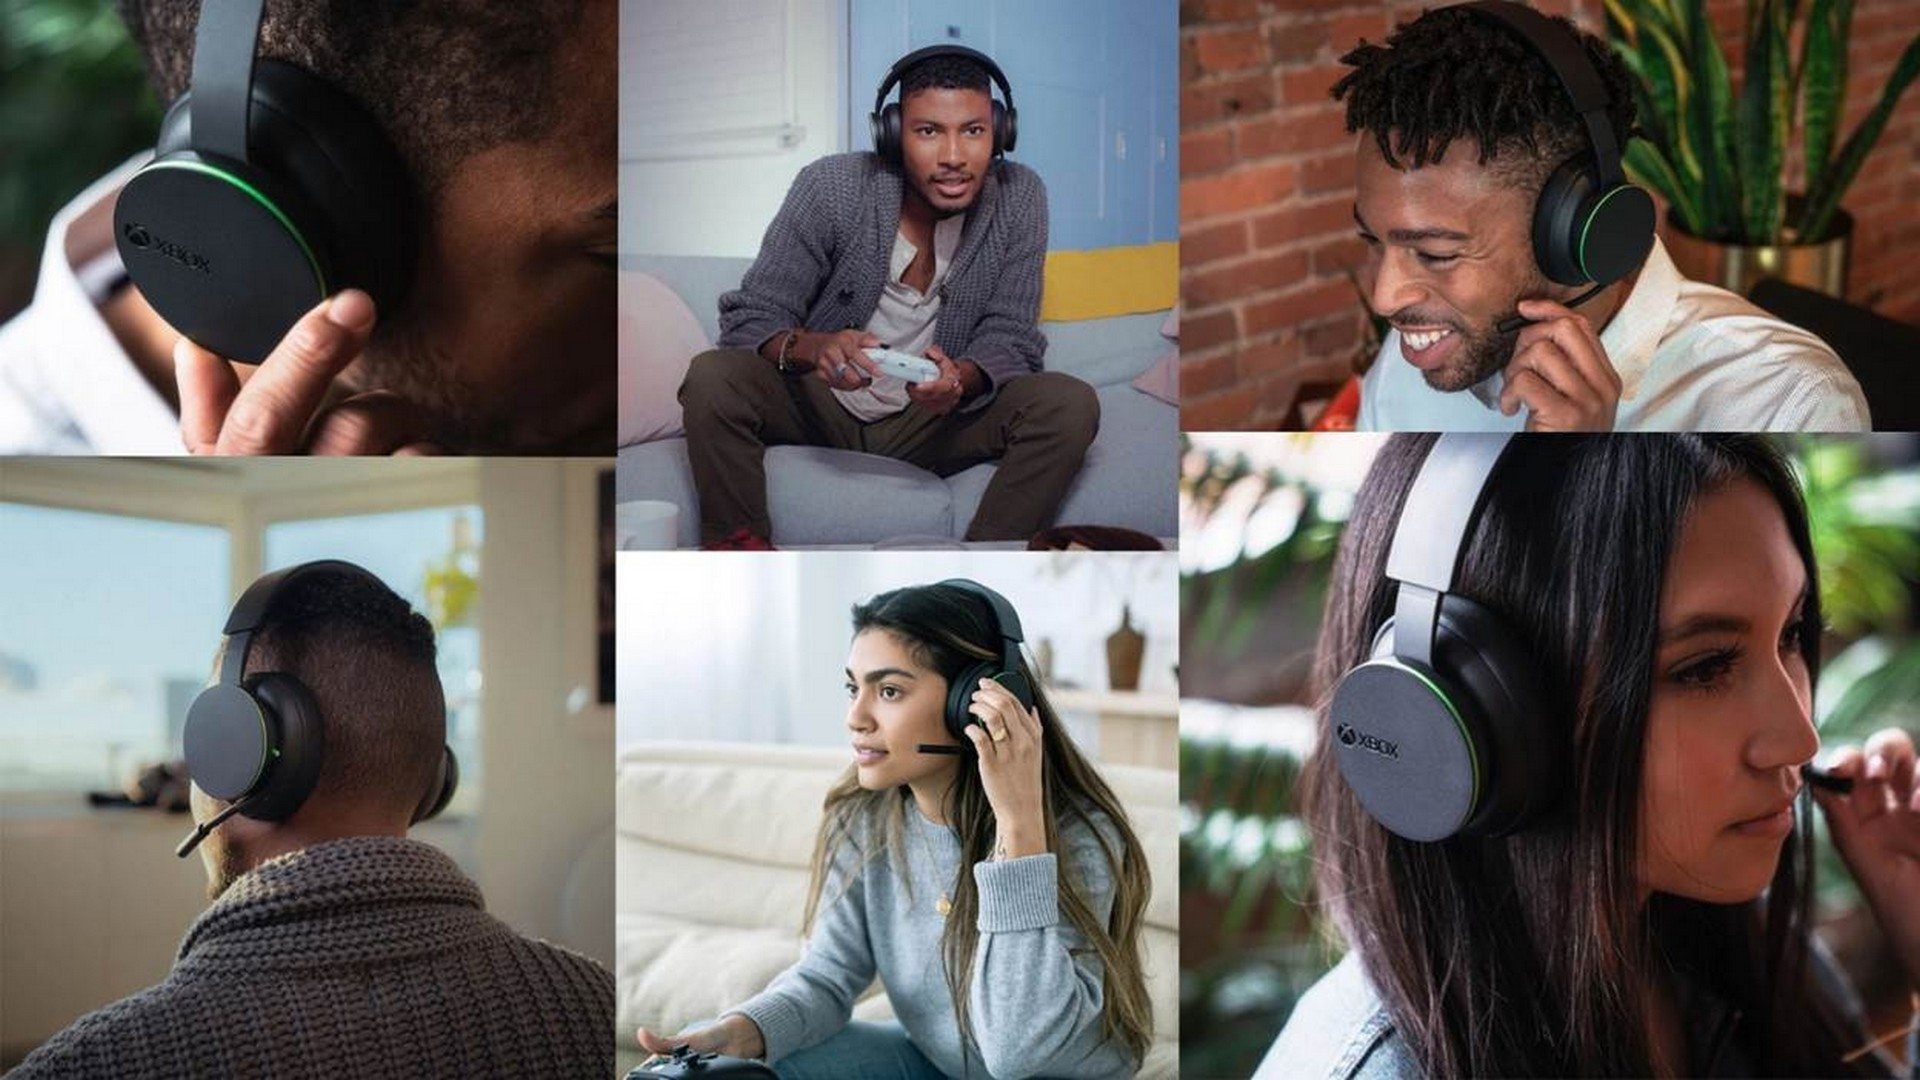 Immerse Yourself In The Future of Gaming Audio With The Xbox Wireless Headset